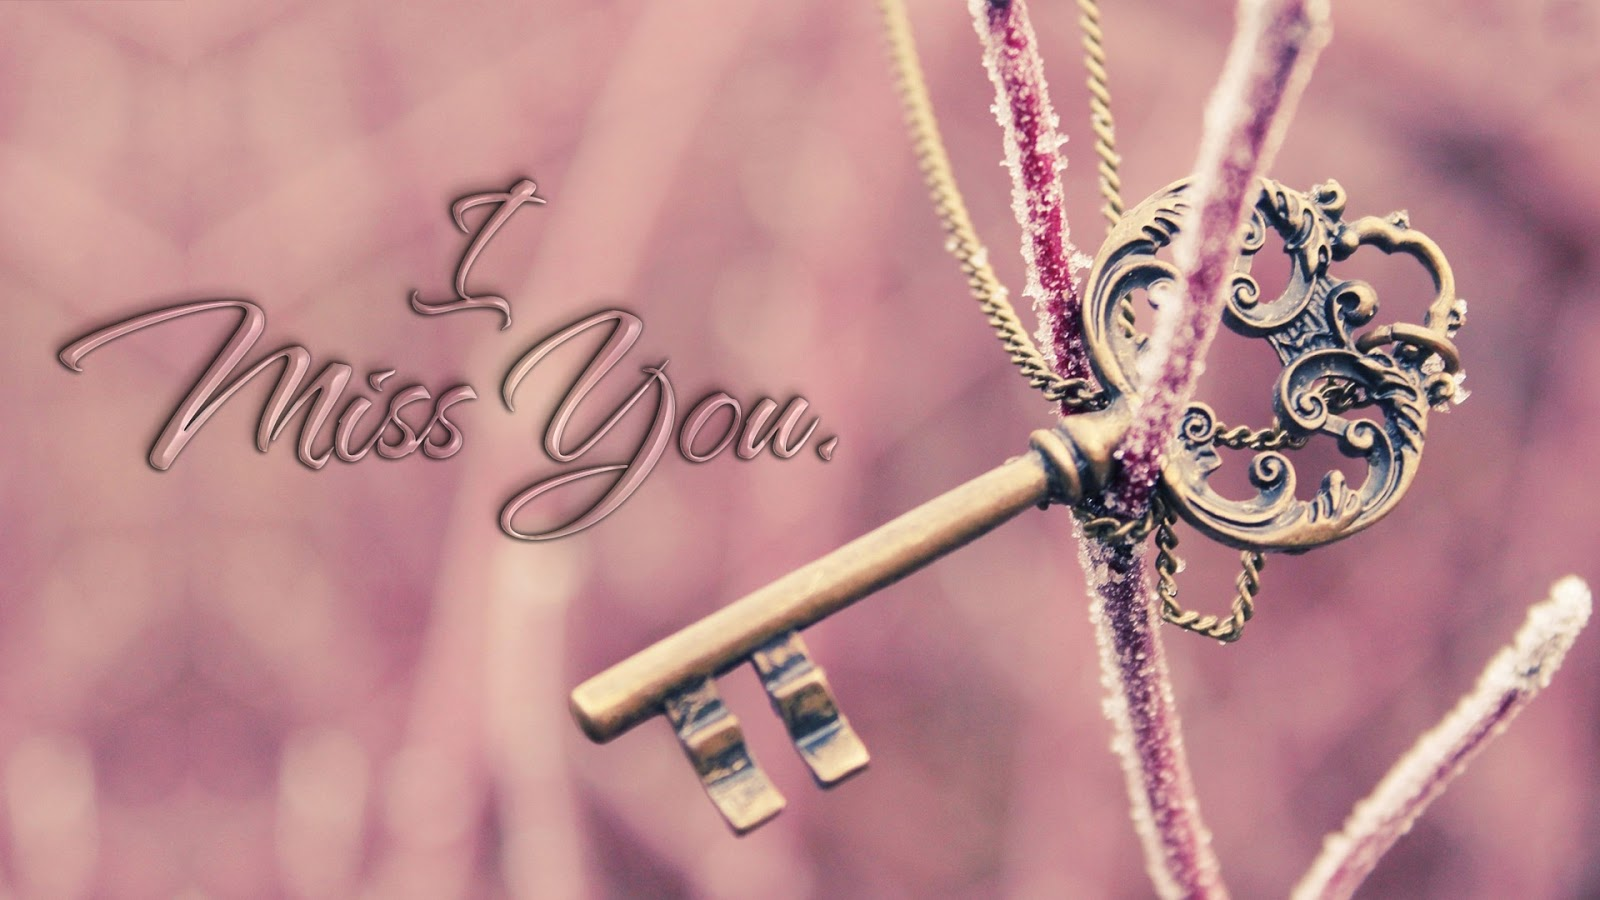 New I Miss You Images Download for Whatsapp